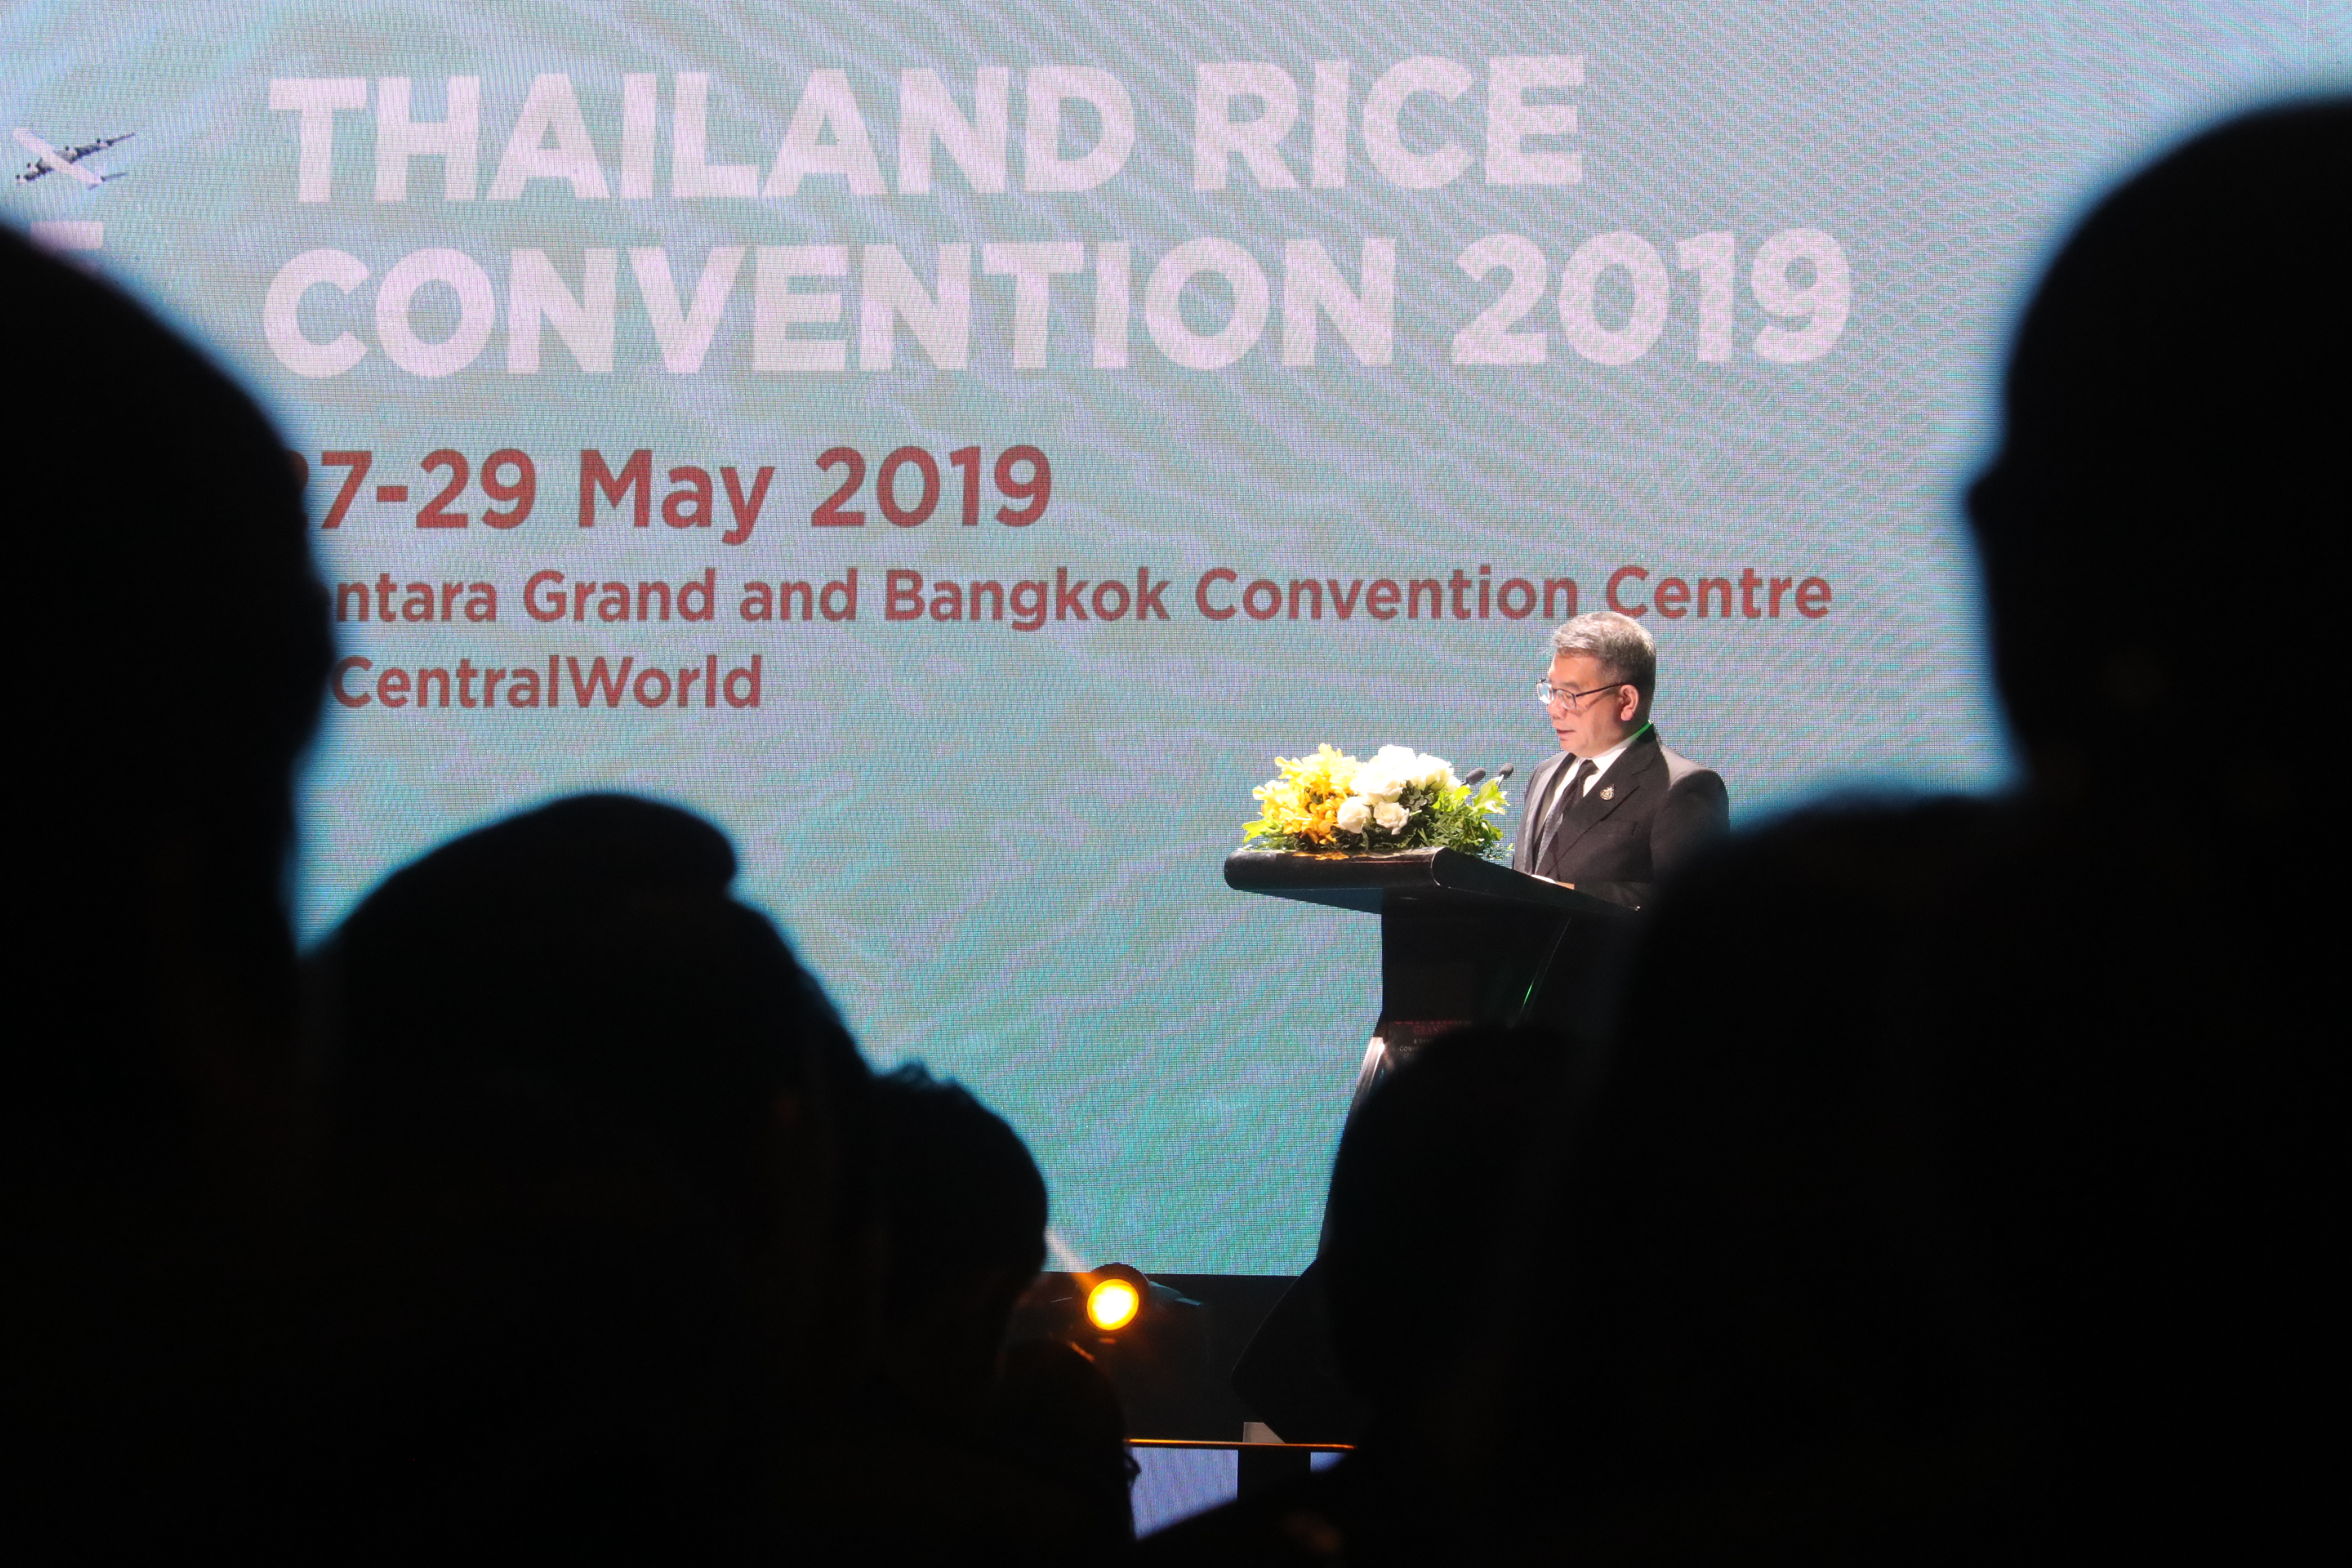 Thailand rice convention 2019